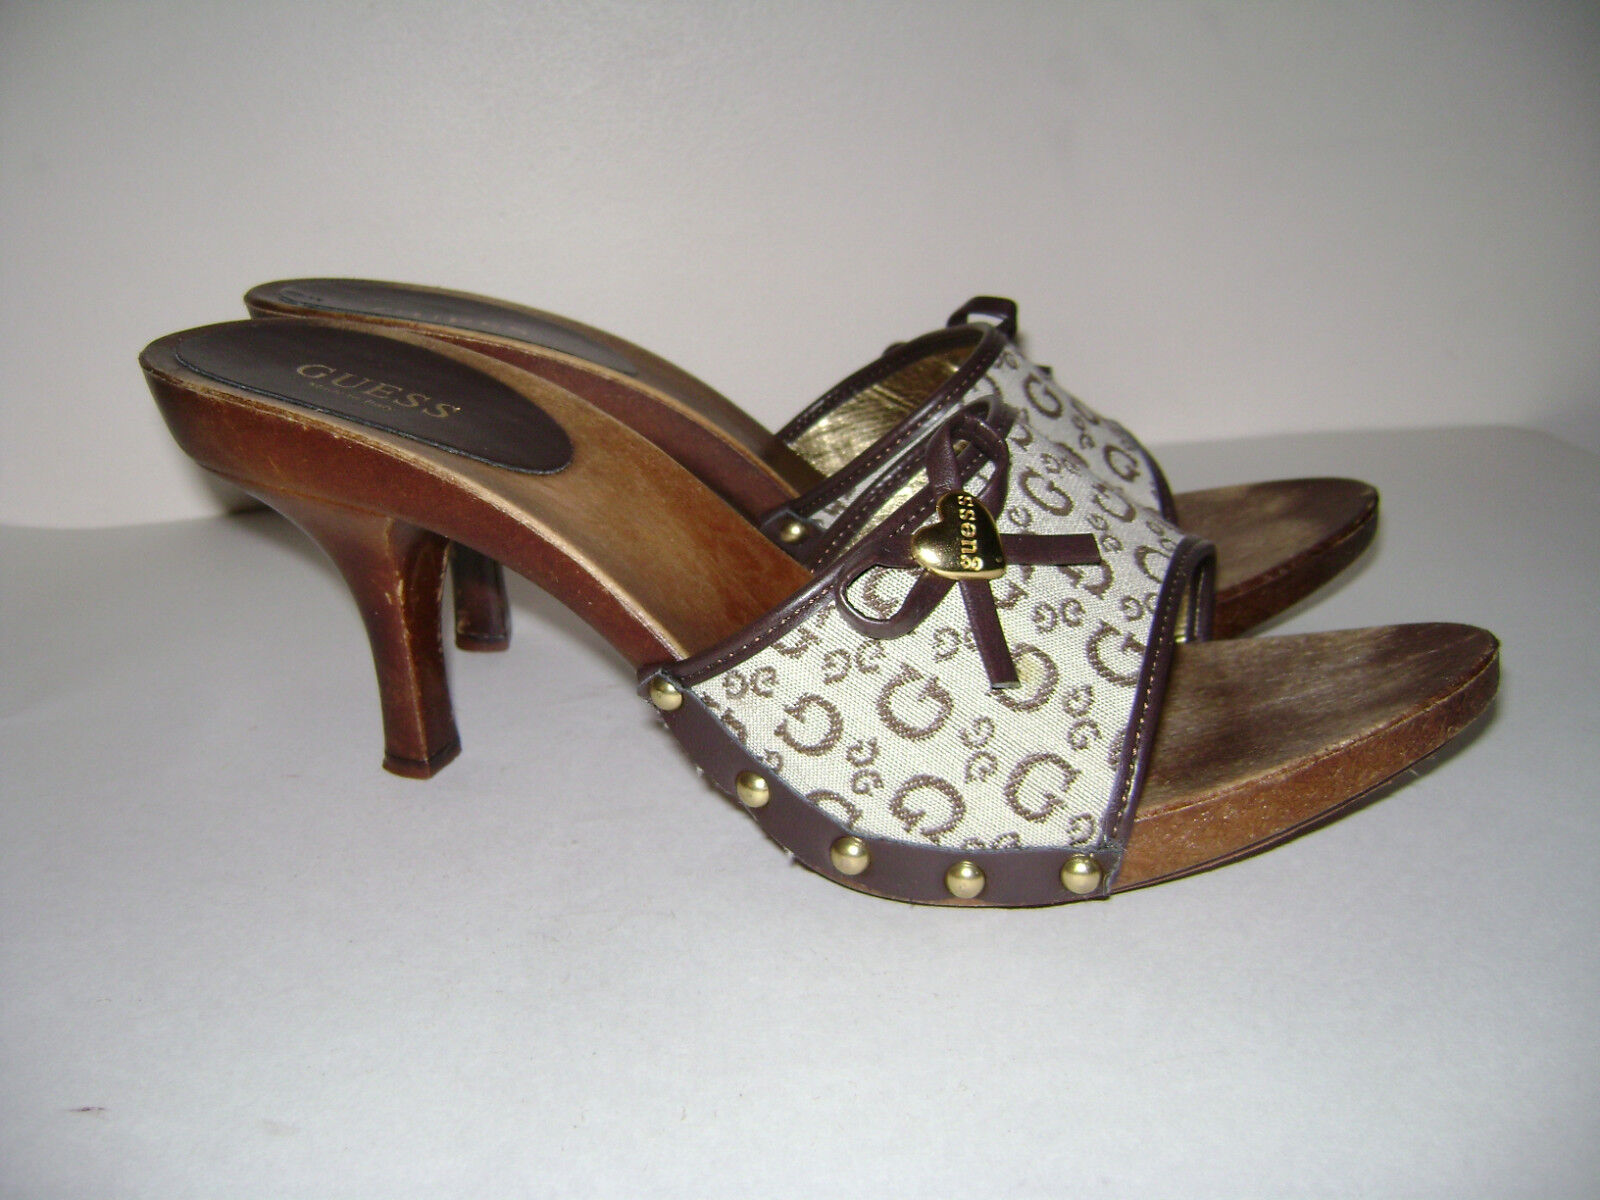 GUESS Size 10 BROWN  BEIGE WOMEN SHOES HEELS MADE IN ITALY SLIDE ONS